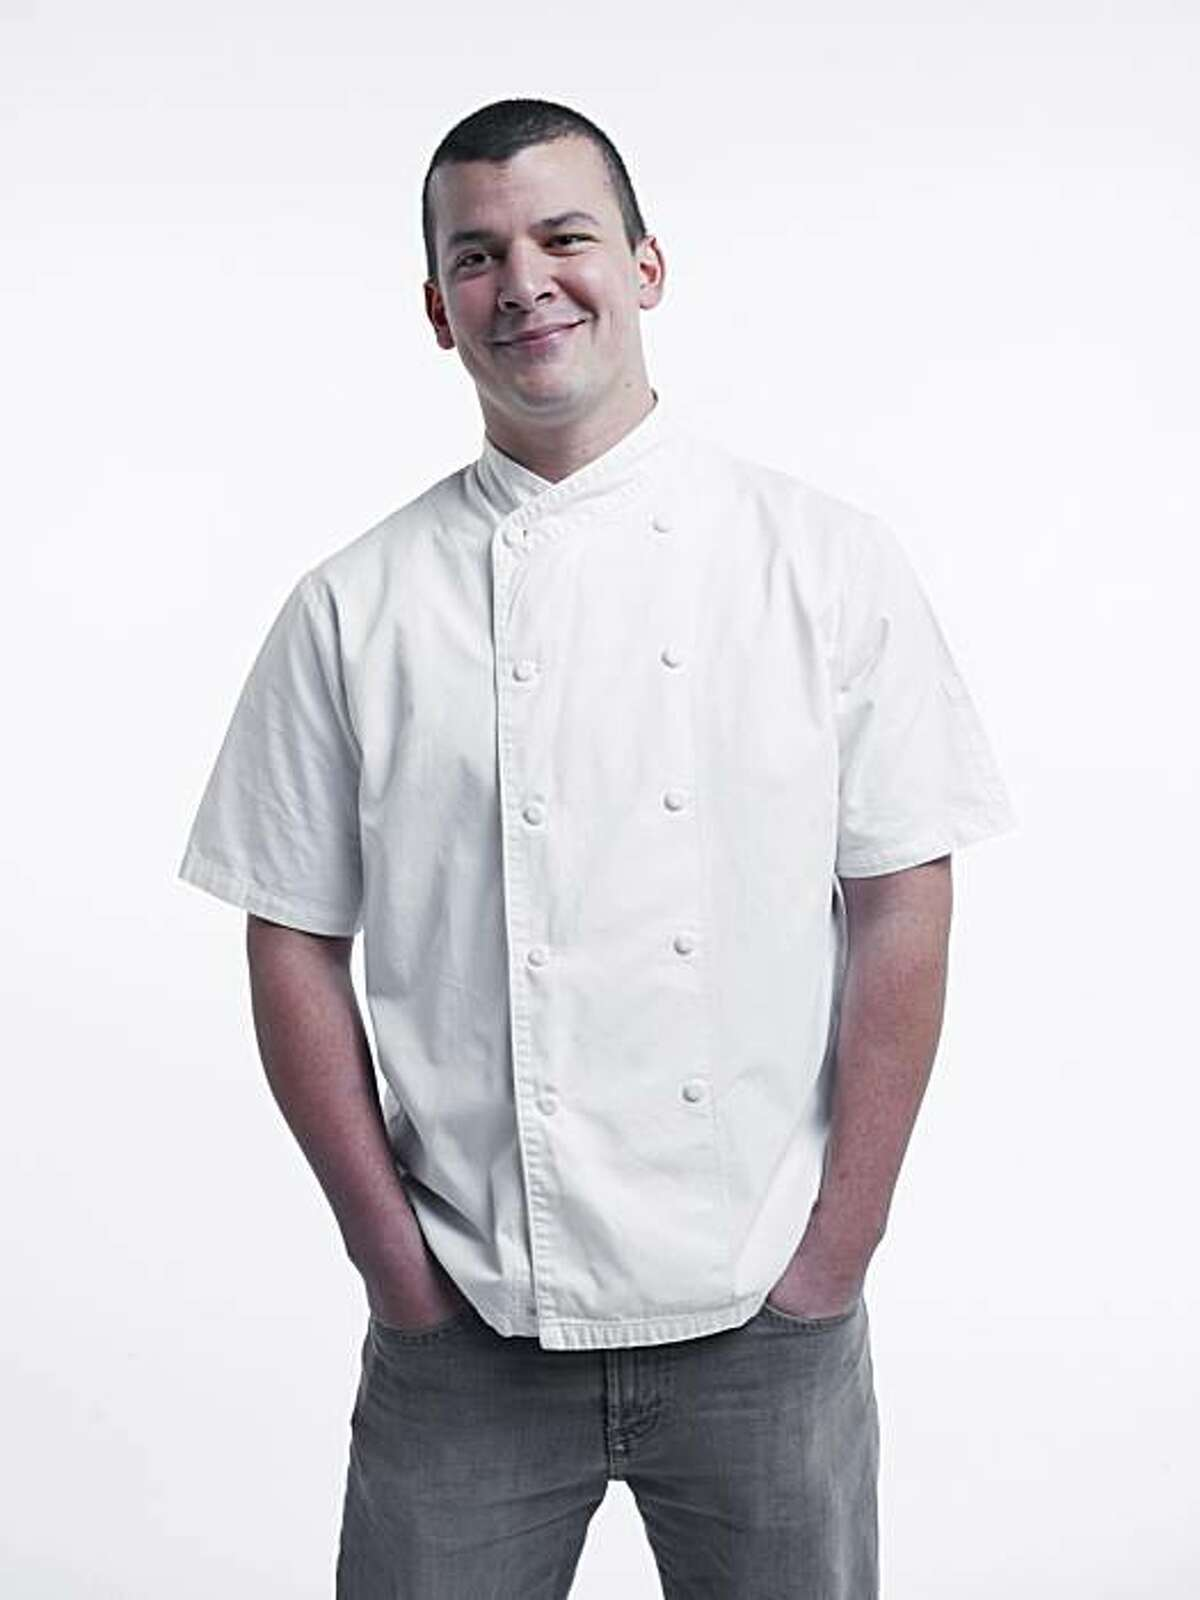 RISINGSTARS_CARMONA18_JOHNLEEPICTURES.JPG John Paul Carmona, chef at Manresa in Los Gatos. Photo taken in the Chronicle photo studio. By JOHN LEE/SPECIAL TO THE CHRONICLE